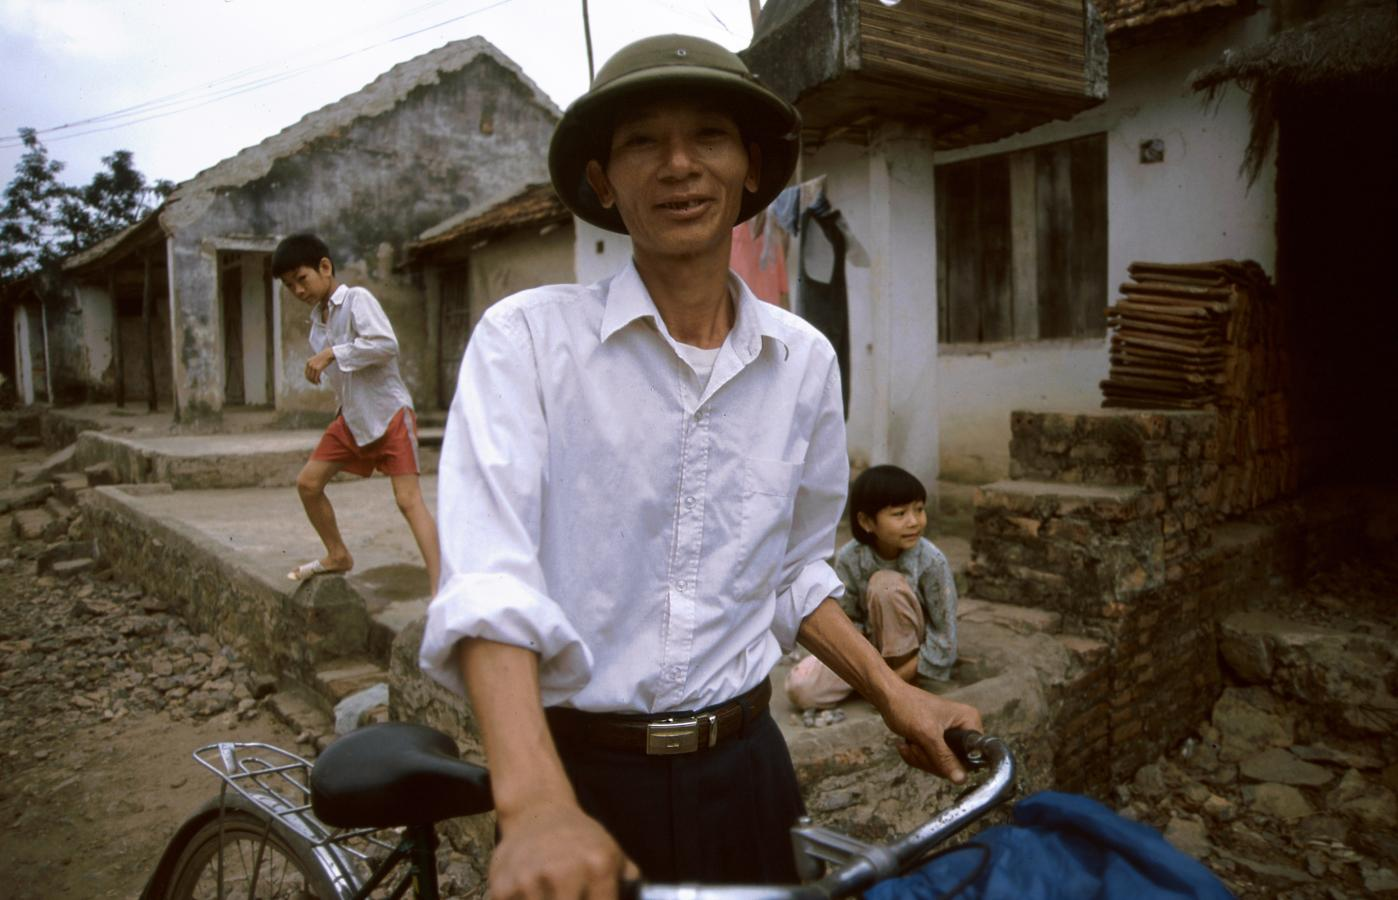 man-with-bicycle-small-village-around-hanoi-vietnam-2002